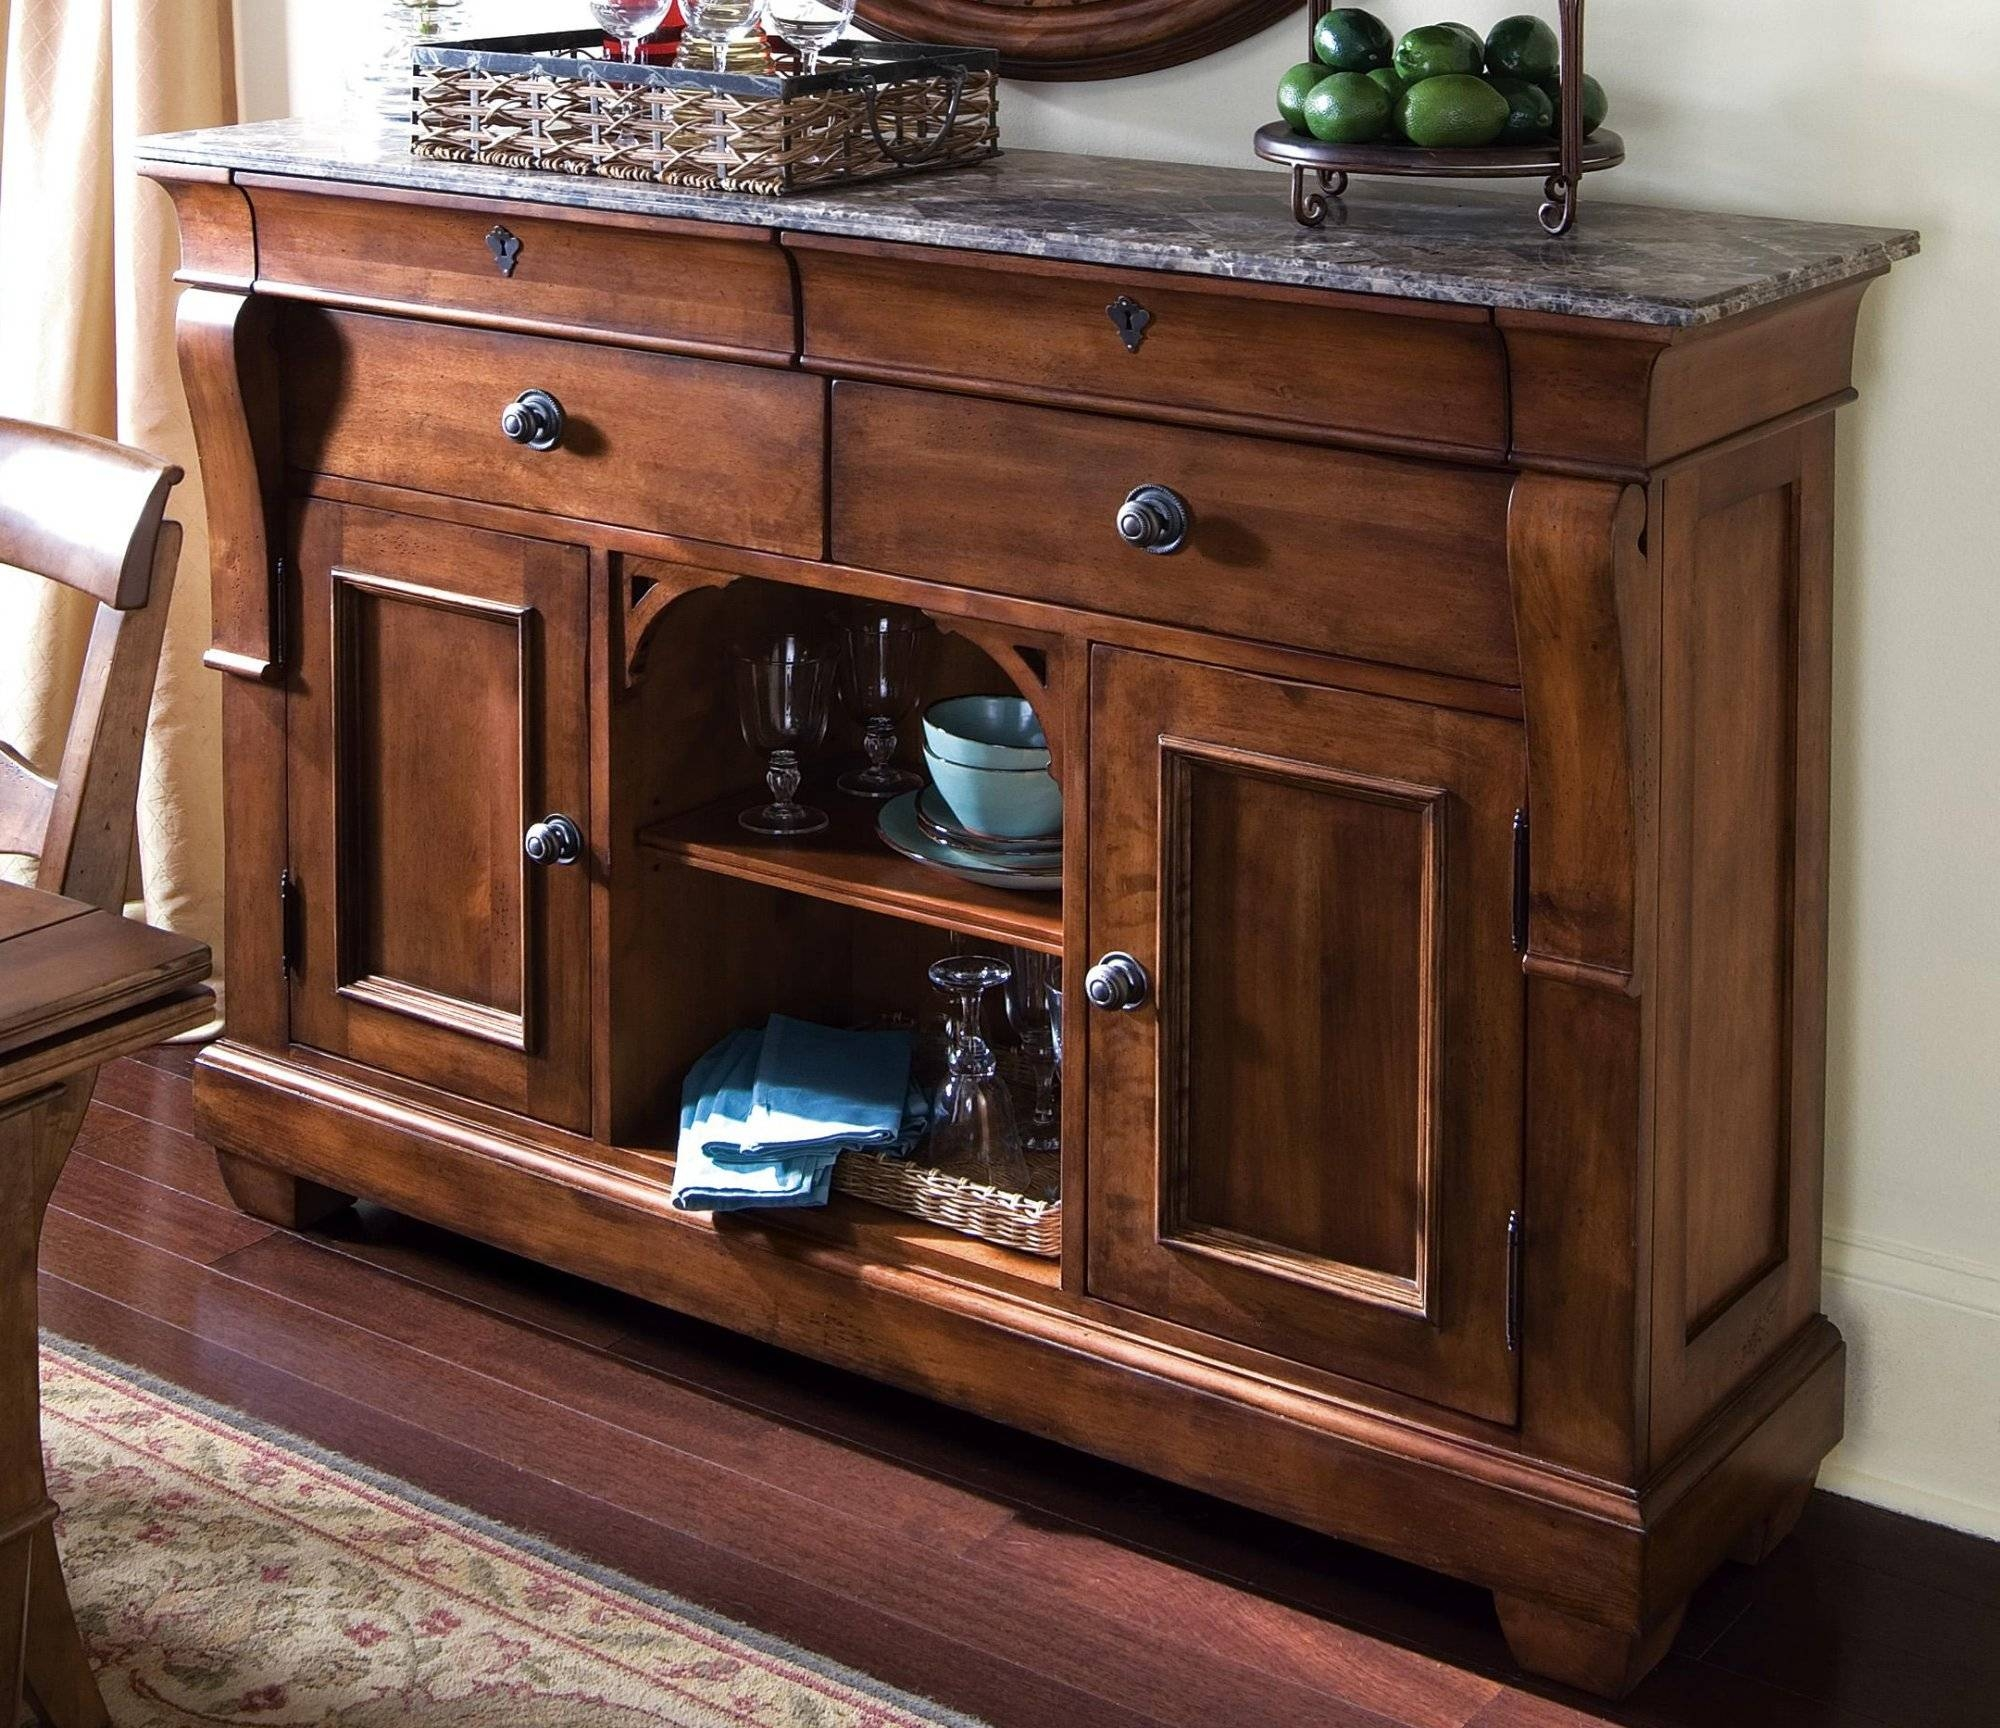 Tuscano Sideboard W/ Marble Top Pertaining To Sideboards With Marble Tops (View 13 of 15)